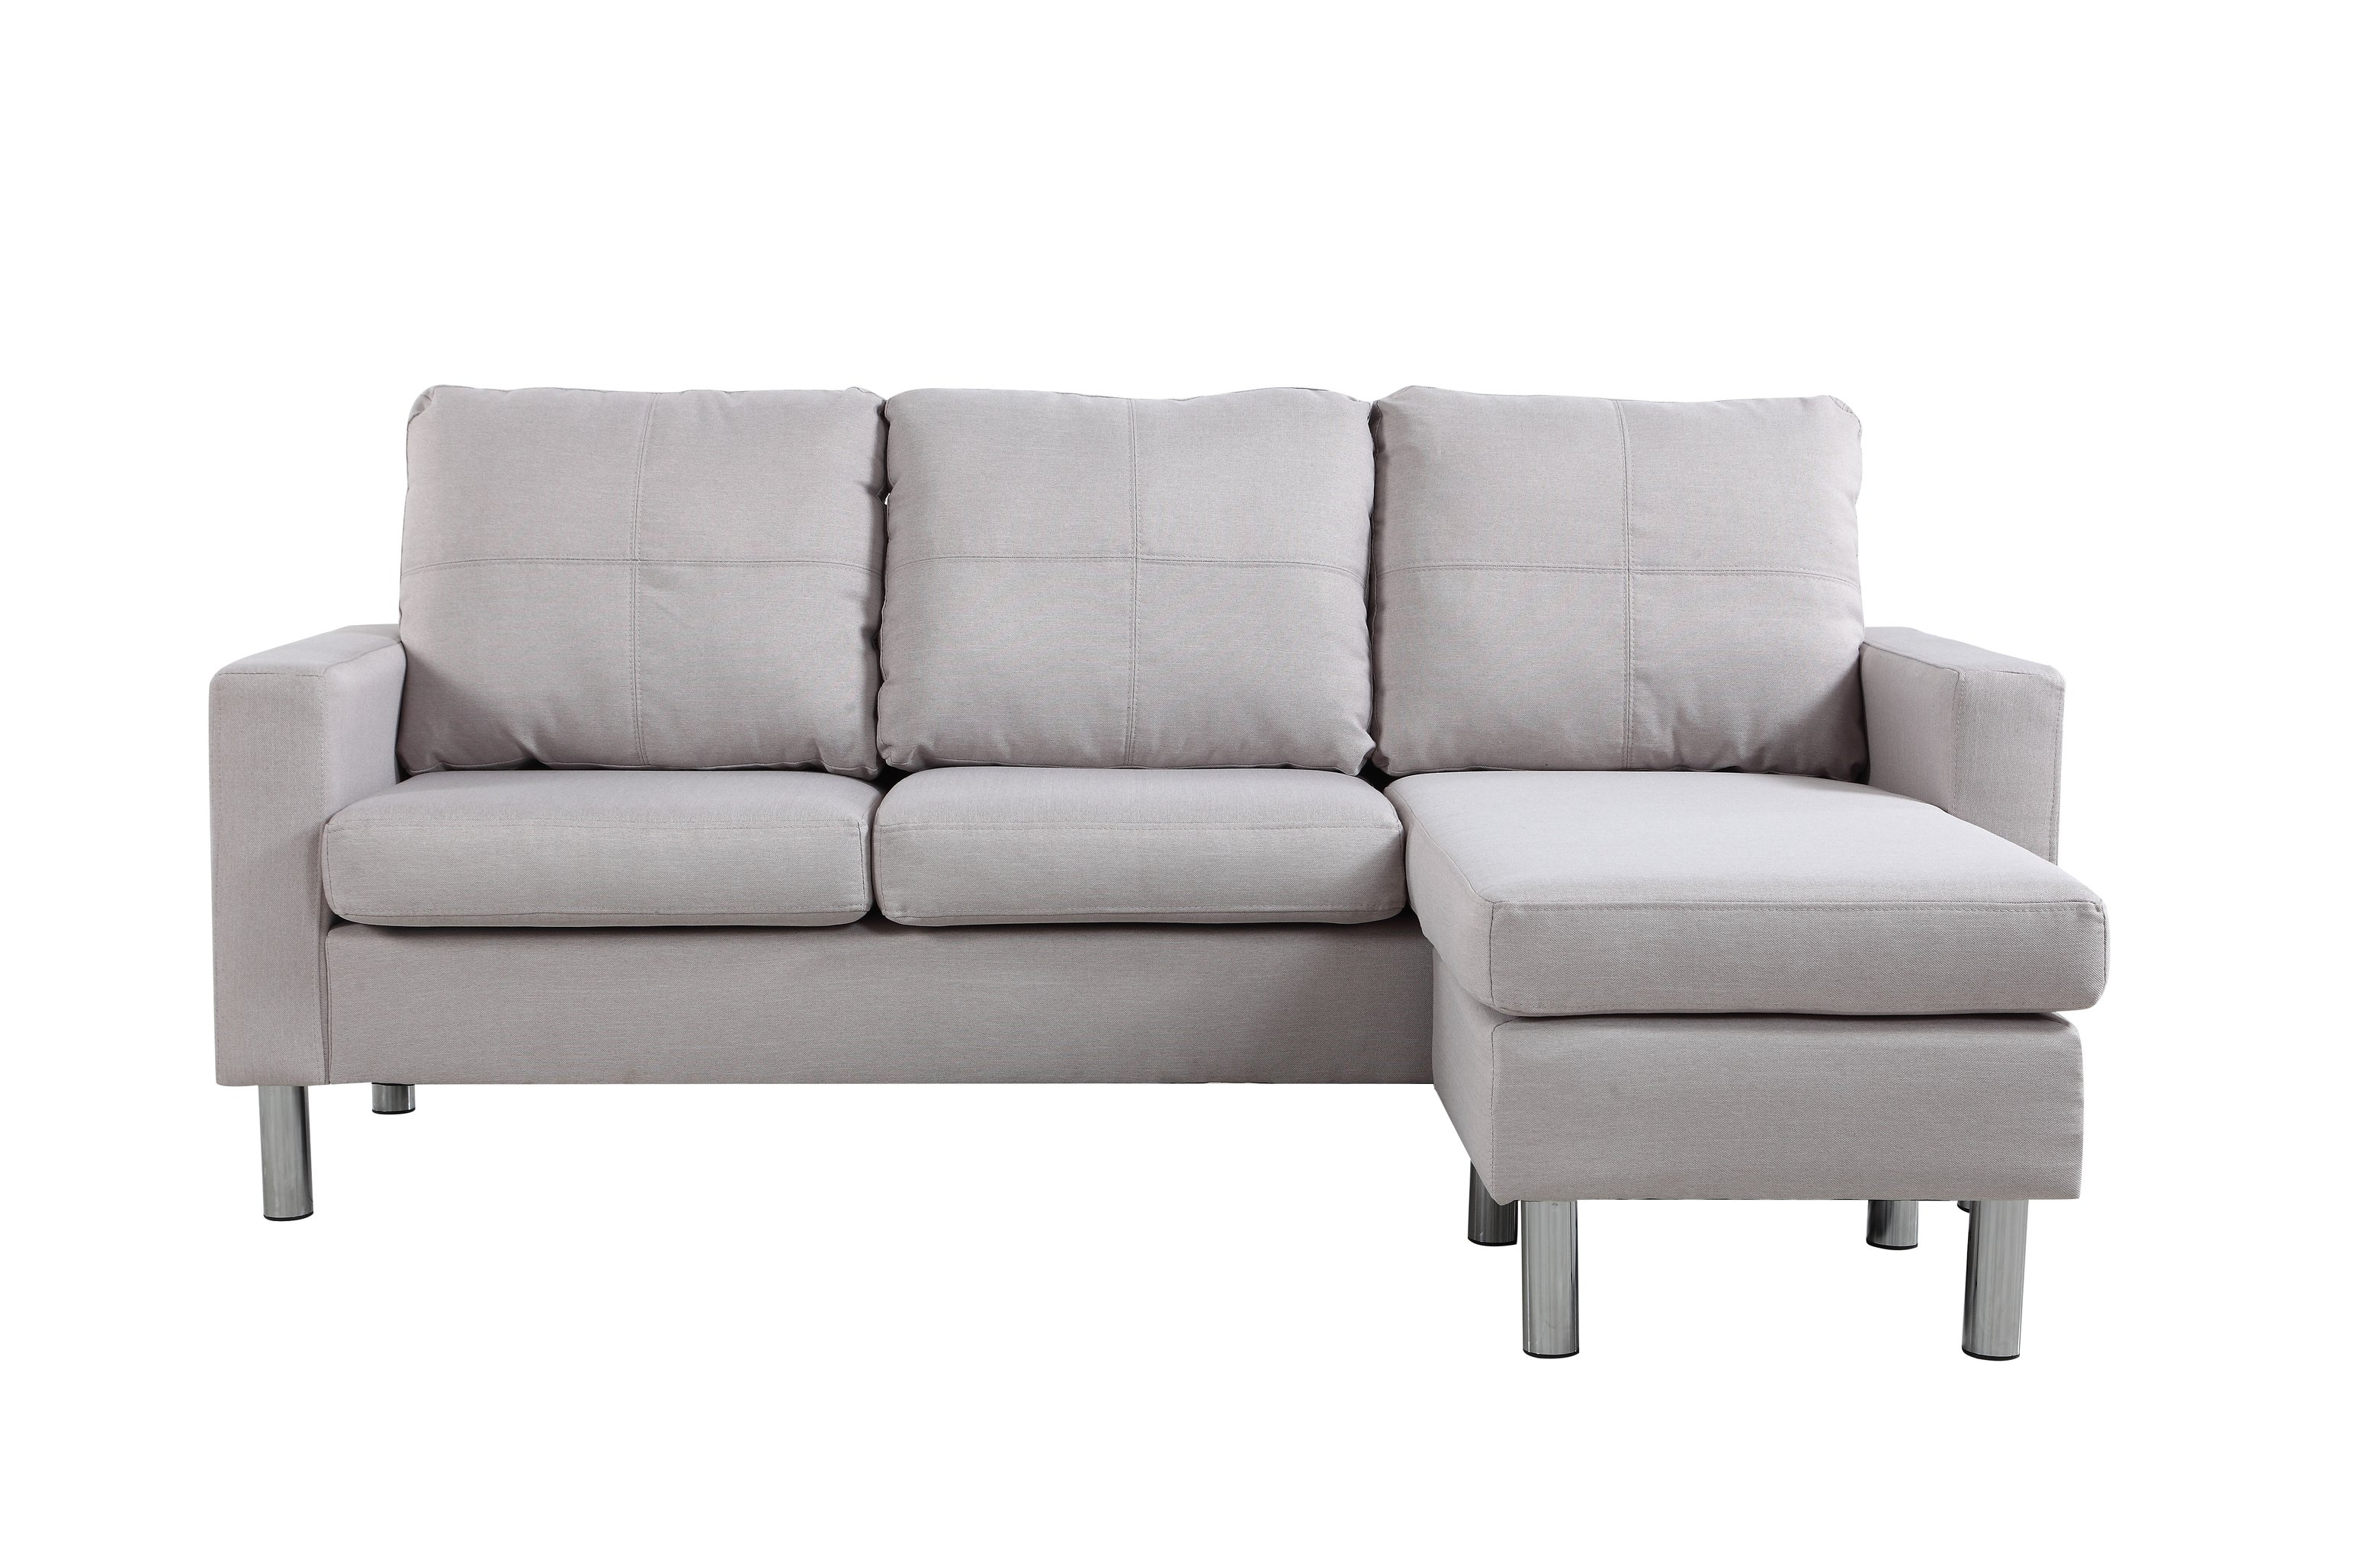 Moderne Sofa Details About Moderne Living Room Reversible Linen Fabric Sectional Sofa Beige